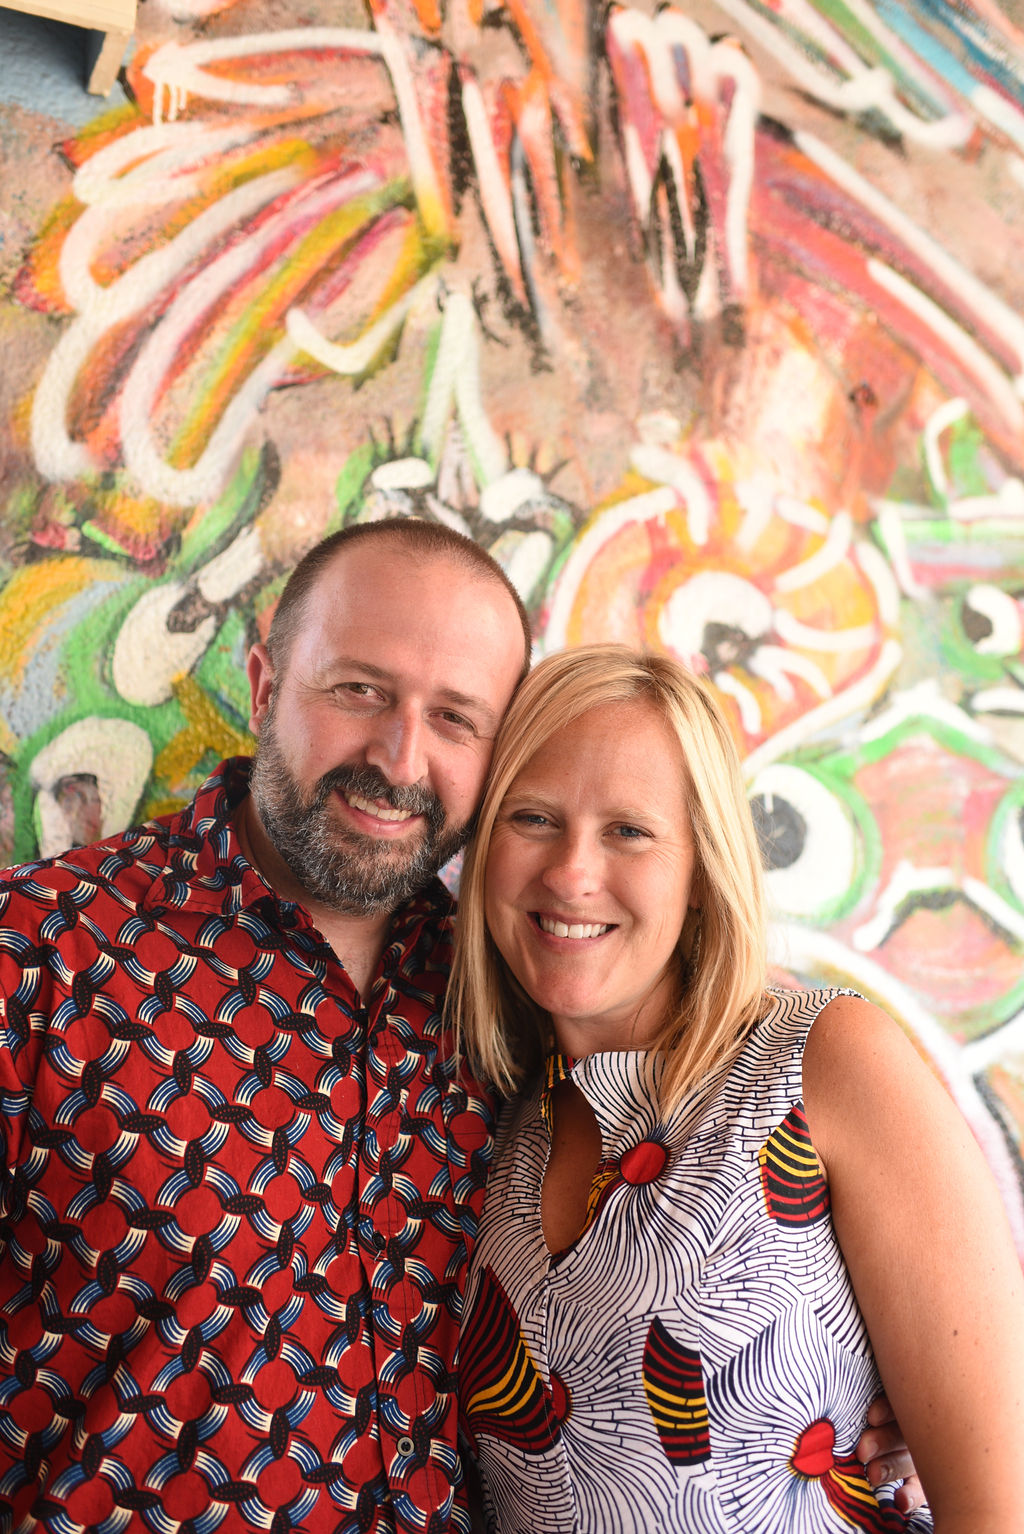 Kara & Ryan Higgins, Imana Kids co-founders.